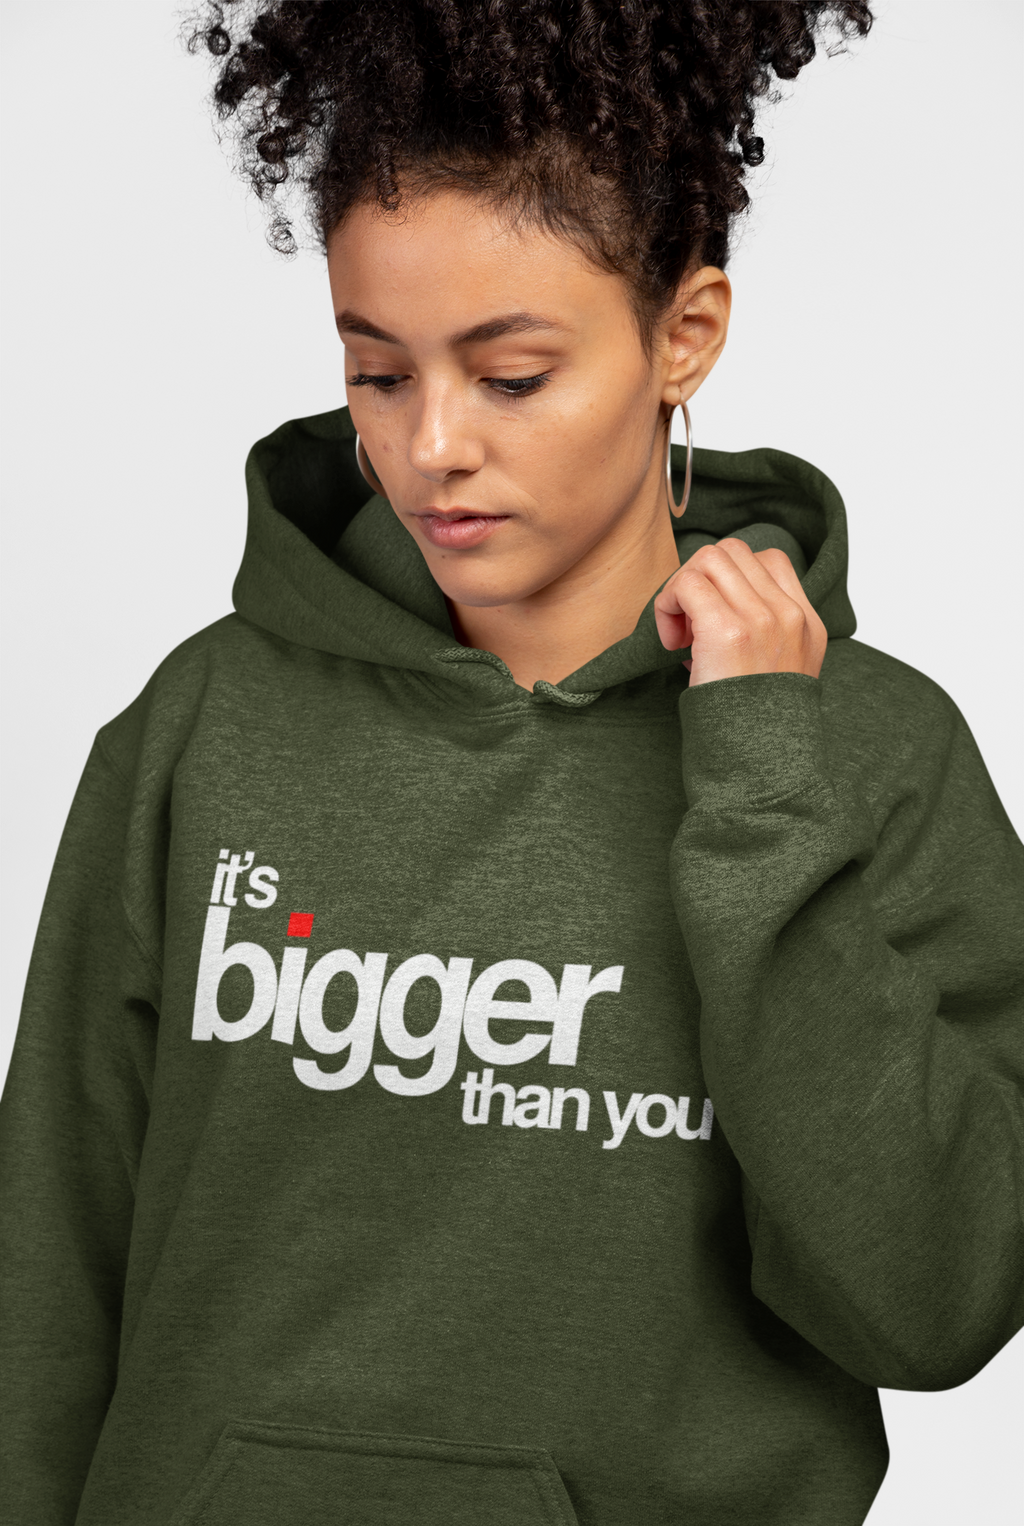 BIGGER THAN YOU - HEATHER ARMY GREEN - PULLOVER HOODIE | UNISEX